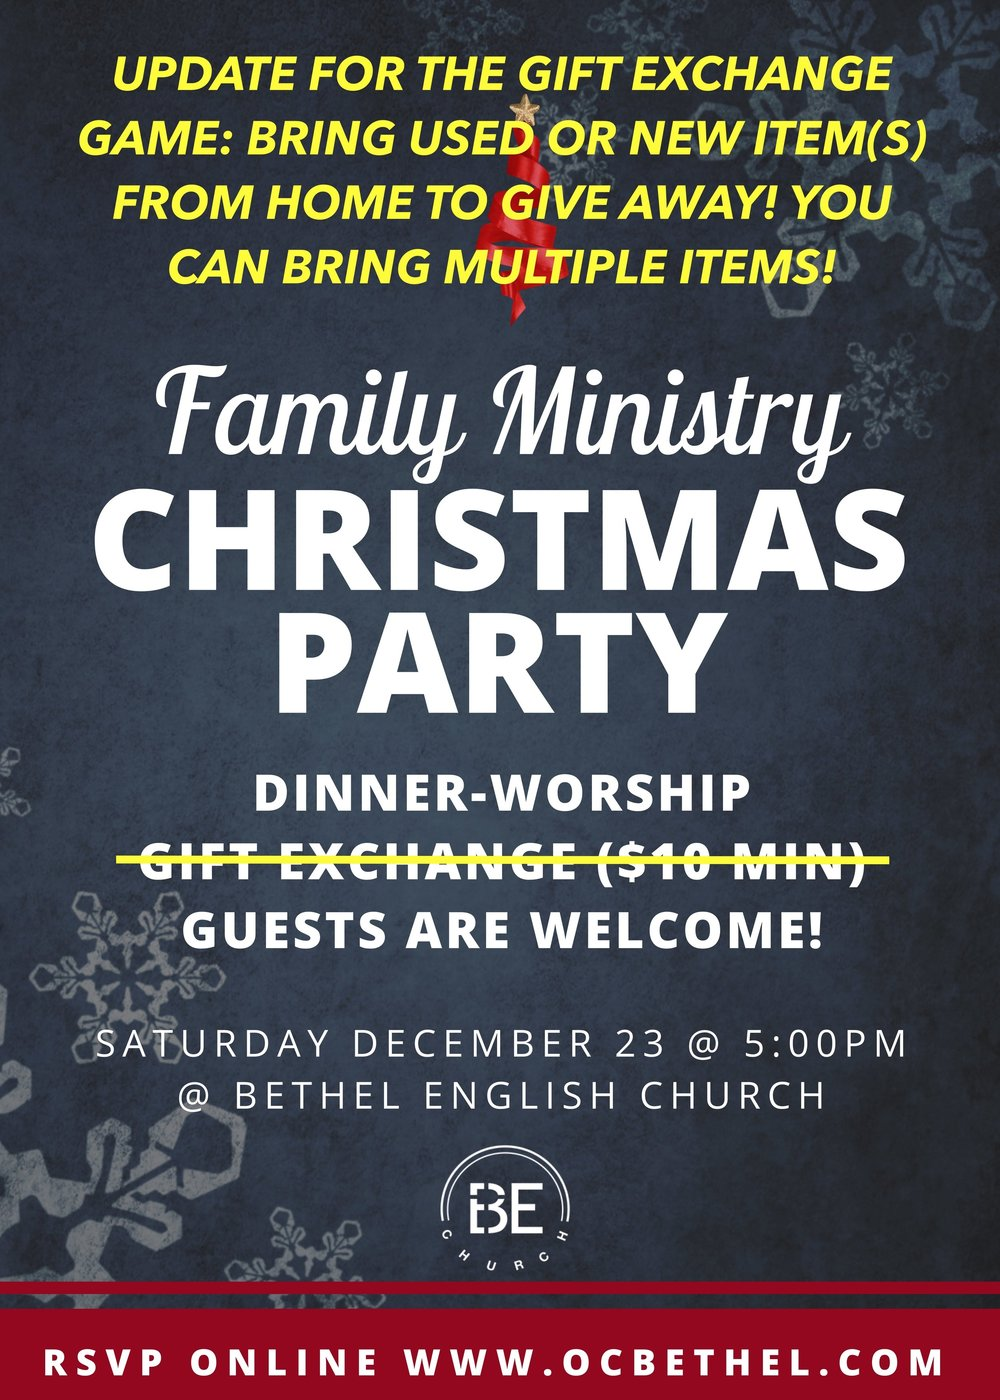 Family Ministry Christmas Party Flyer.jpg